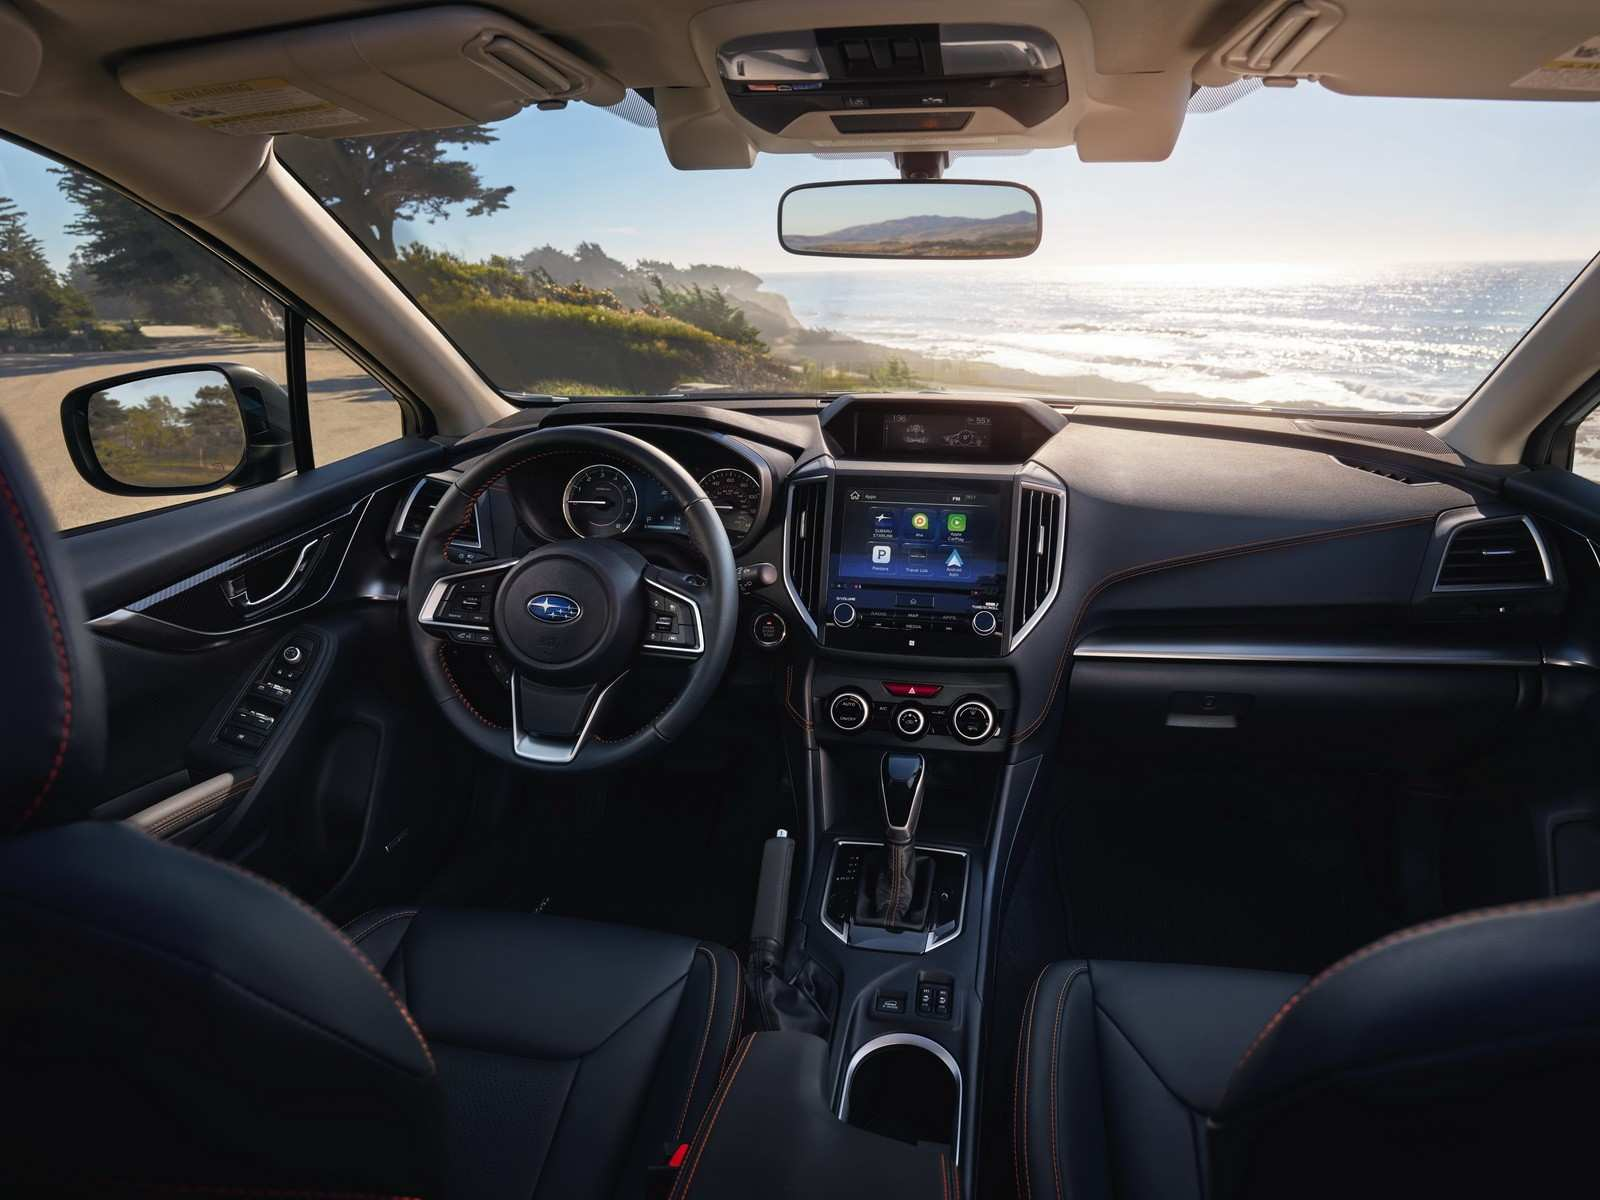 81 The 2019 Subaru Evoltis Wallpaper with 2019 Subaru Evoltis